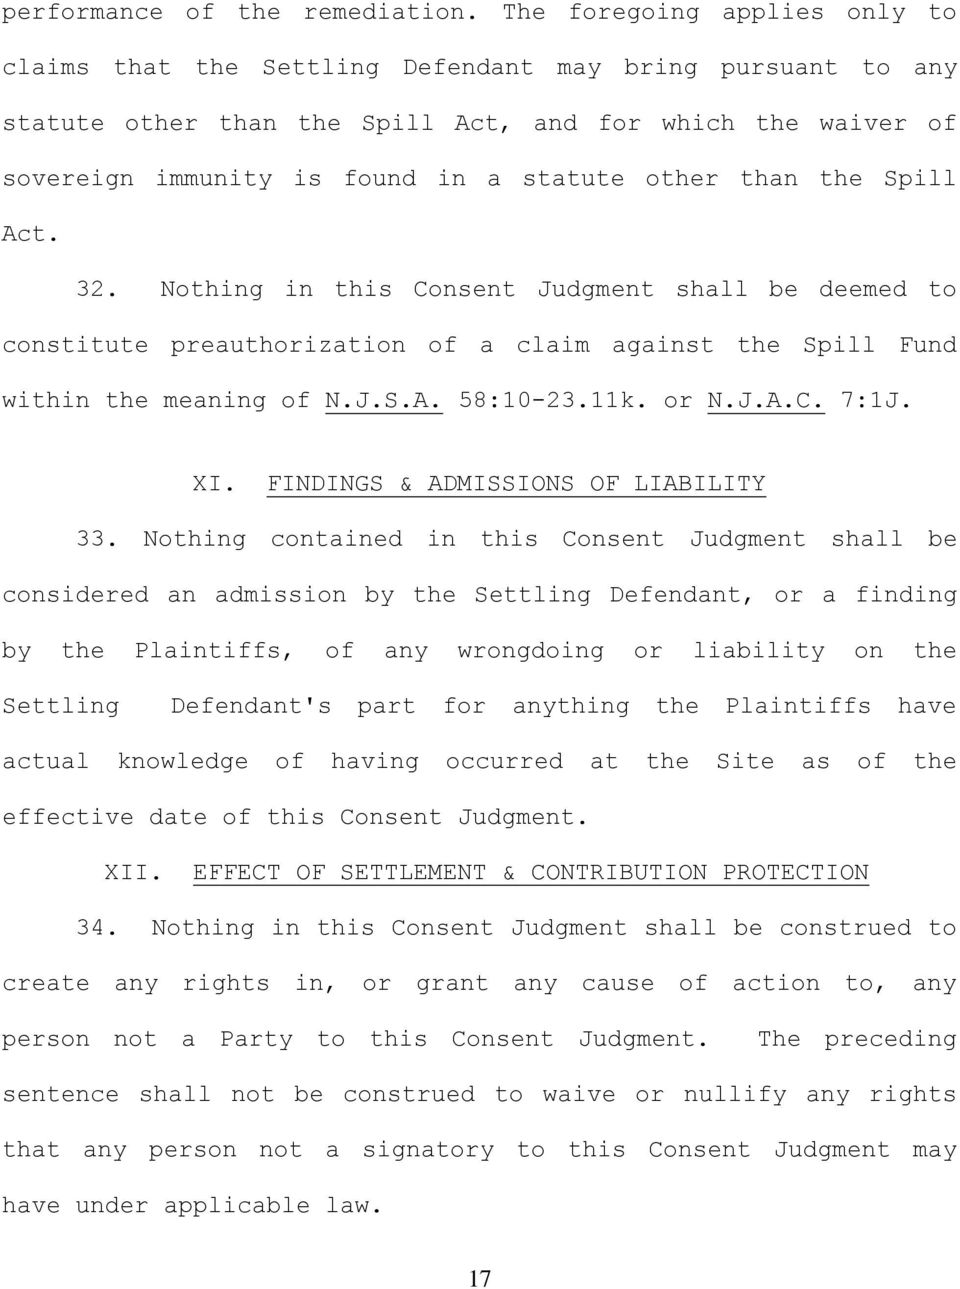 than the Spill Act. 32. Nothing in this Consent Judgment shall be deemed to constitute preauthorization of a claim against the Spill Fund within the meaning of N.J.S.A. 58:10-23.11k. or N.J.A.C. 7:1J.